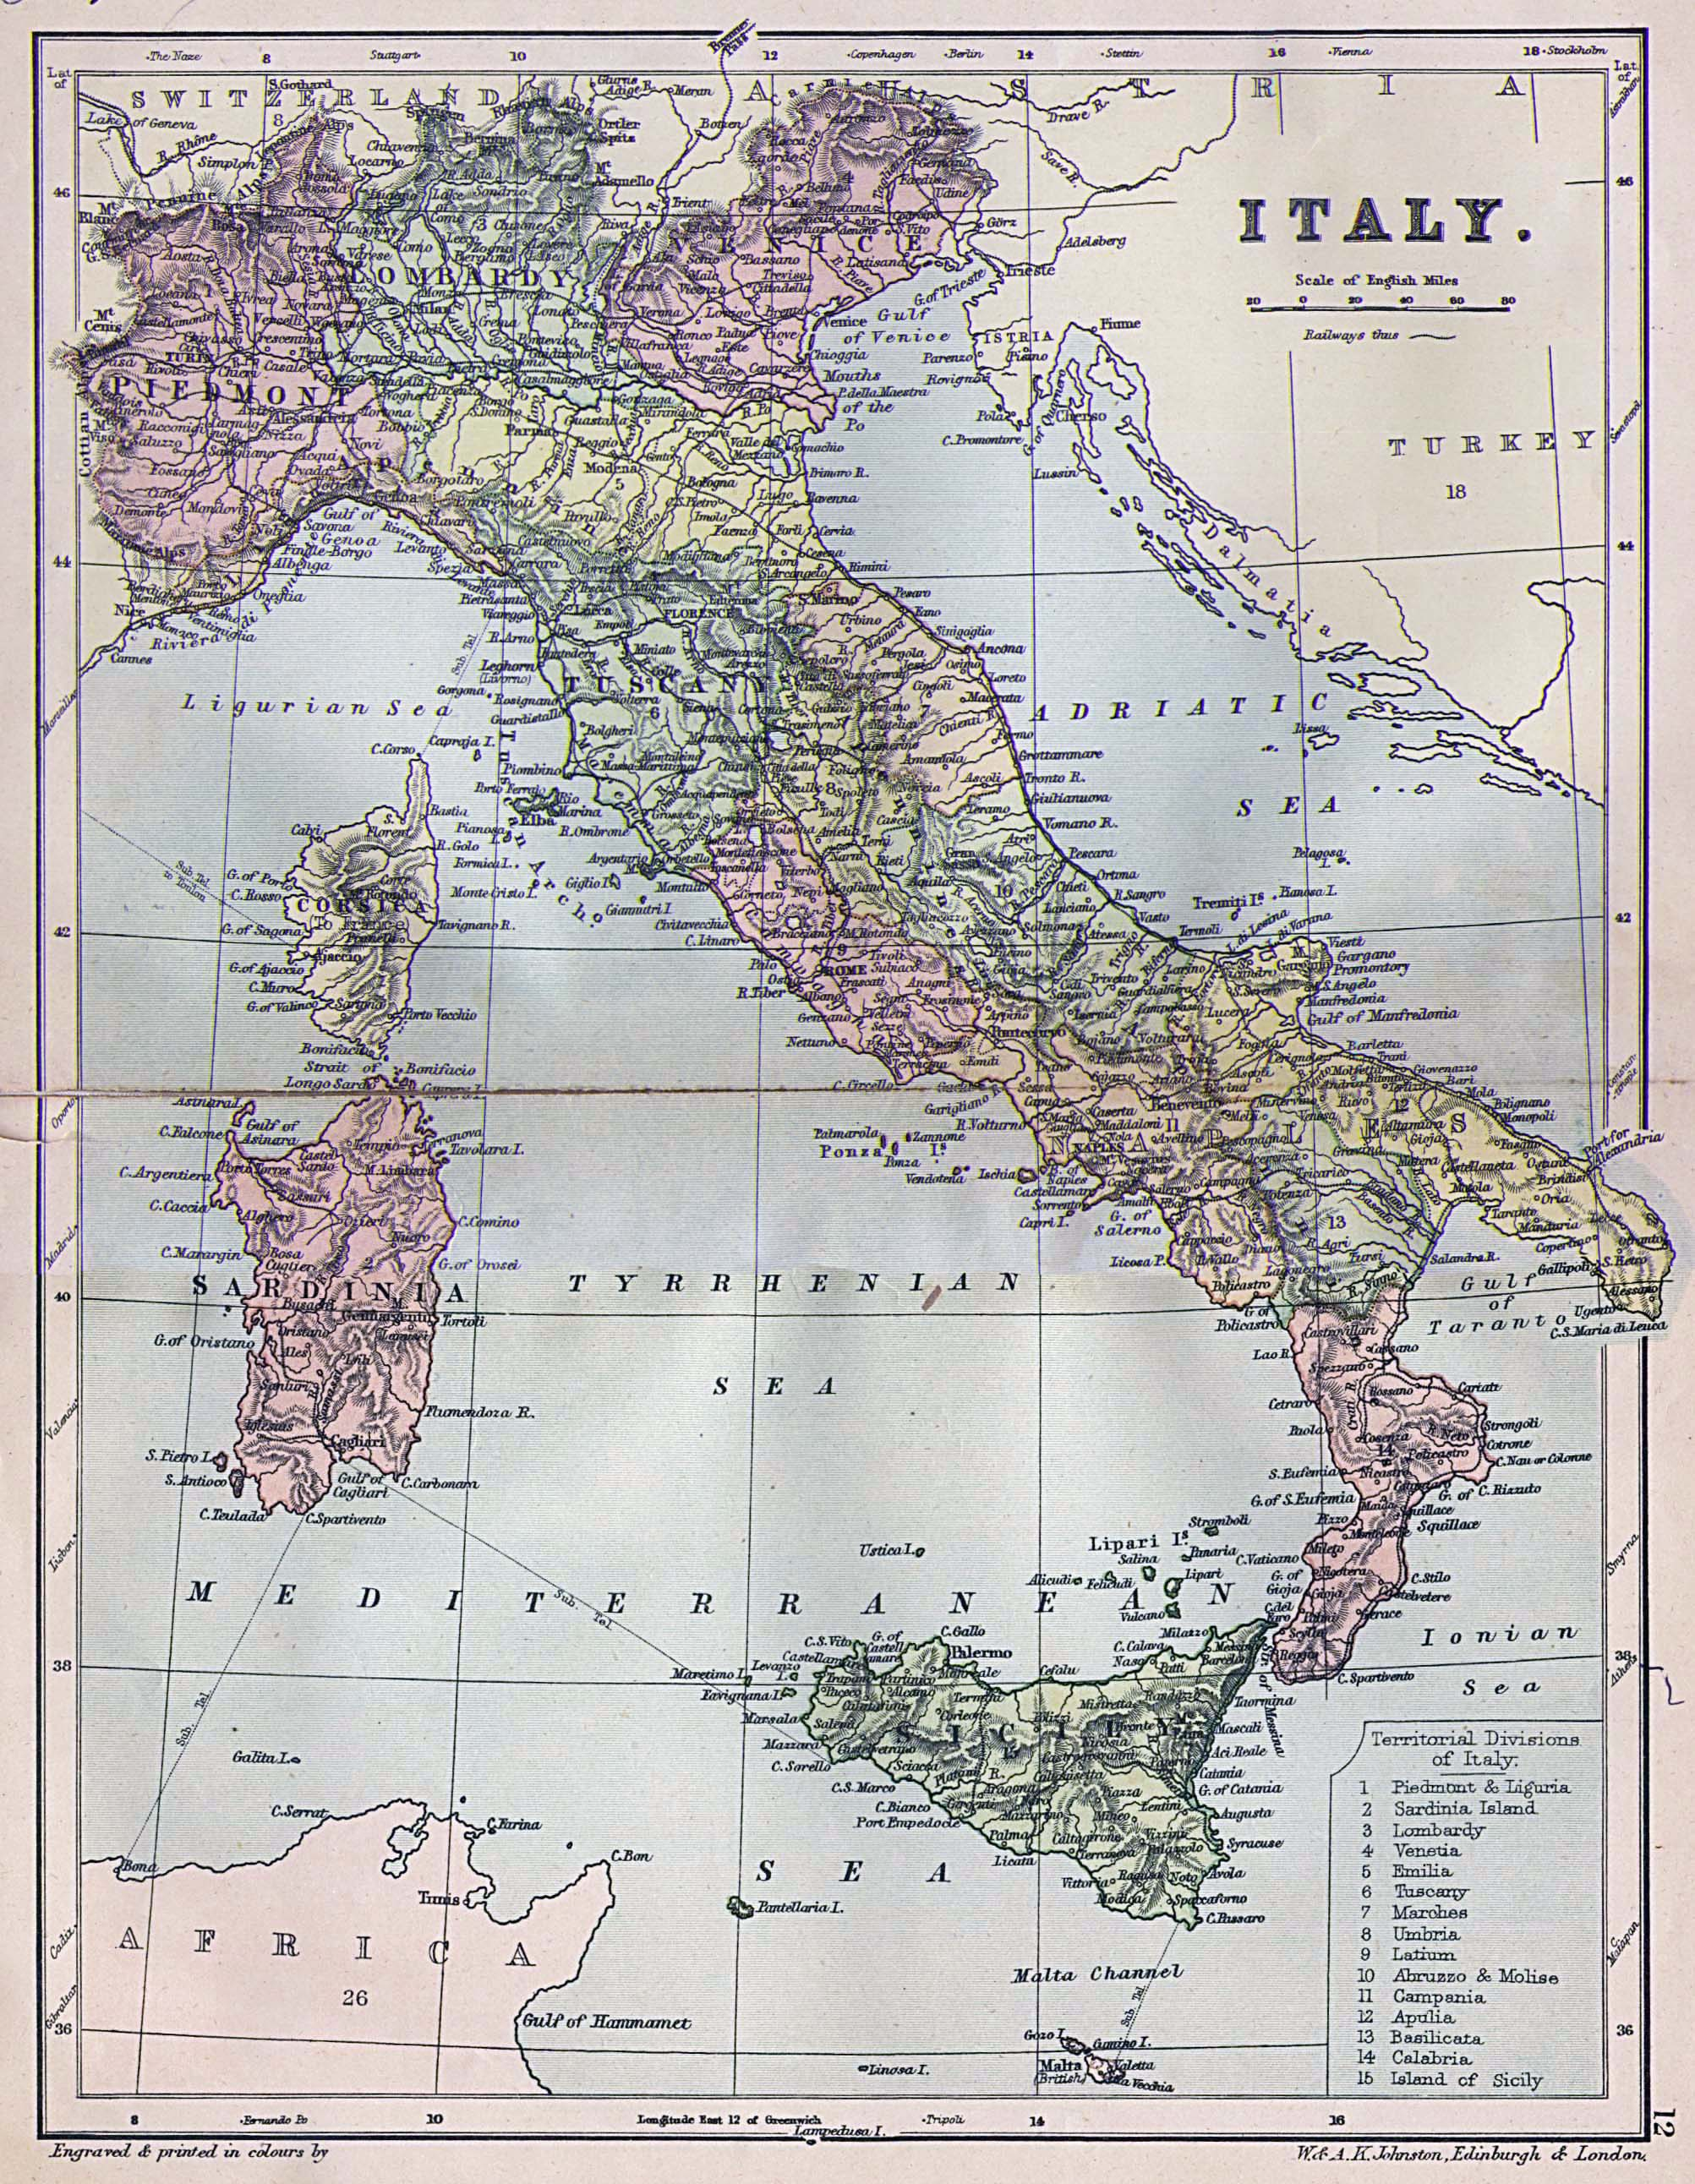 Detailed Old Political Map Of Italy Italy Detailed Old - Political map of italy